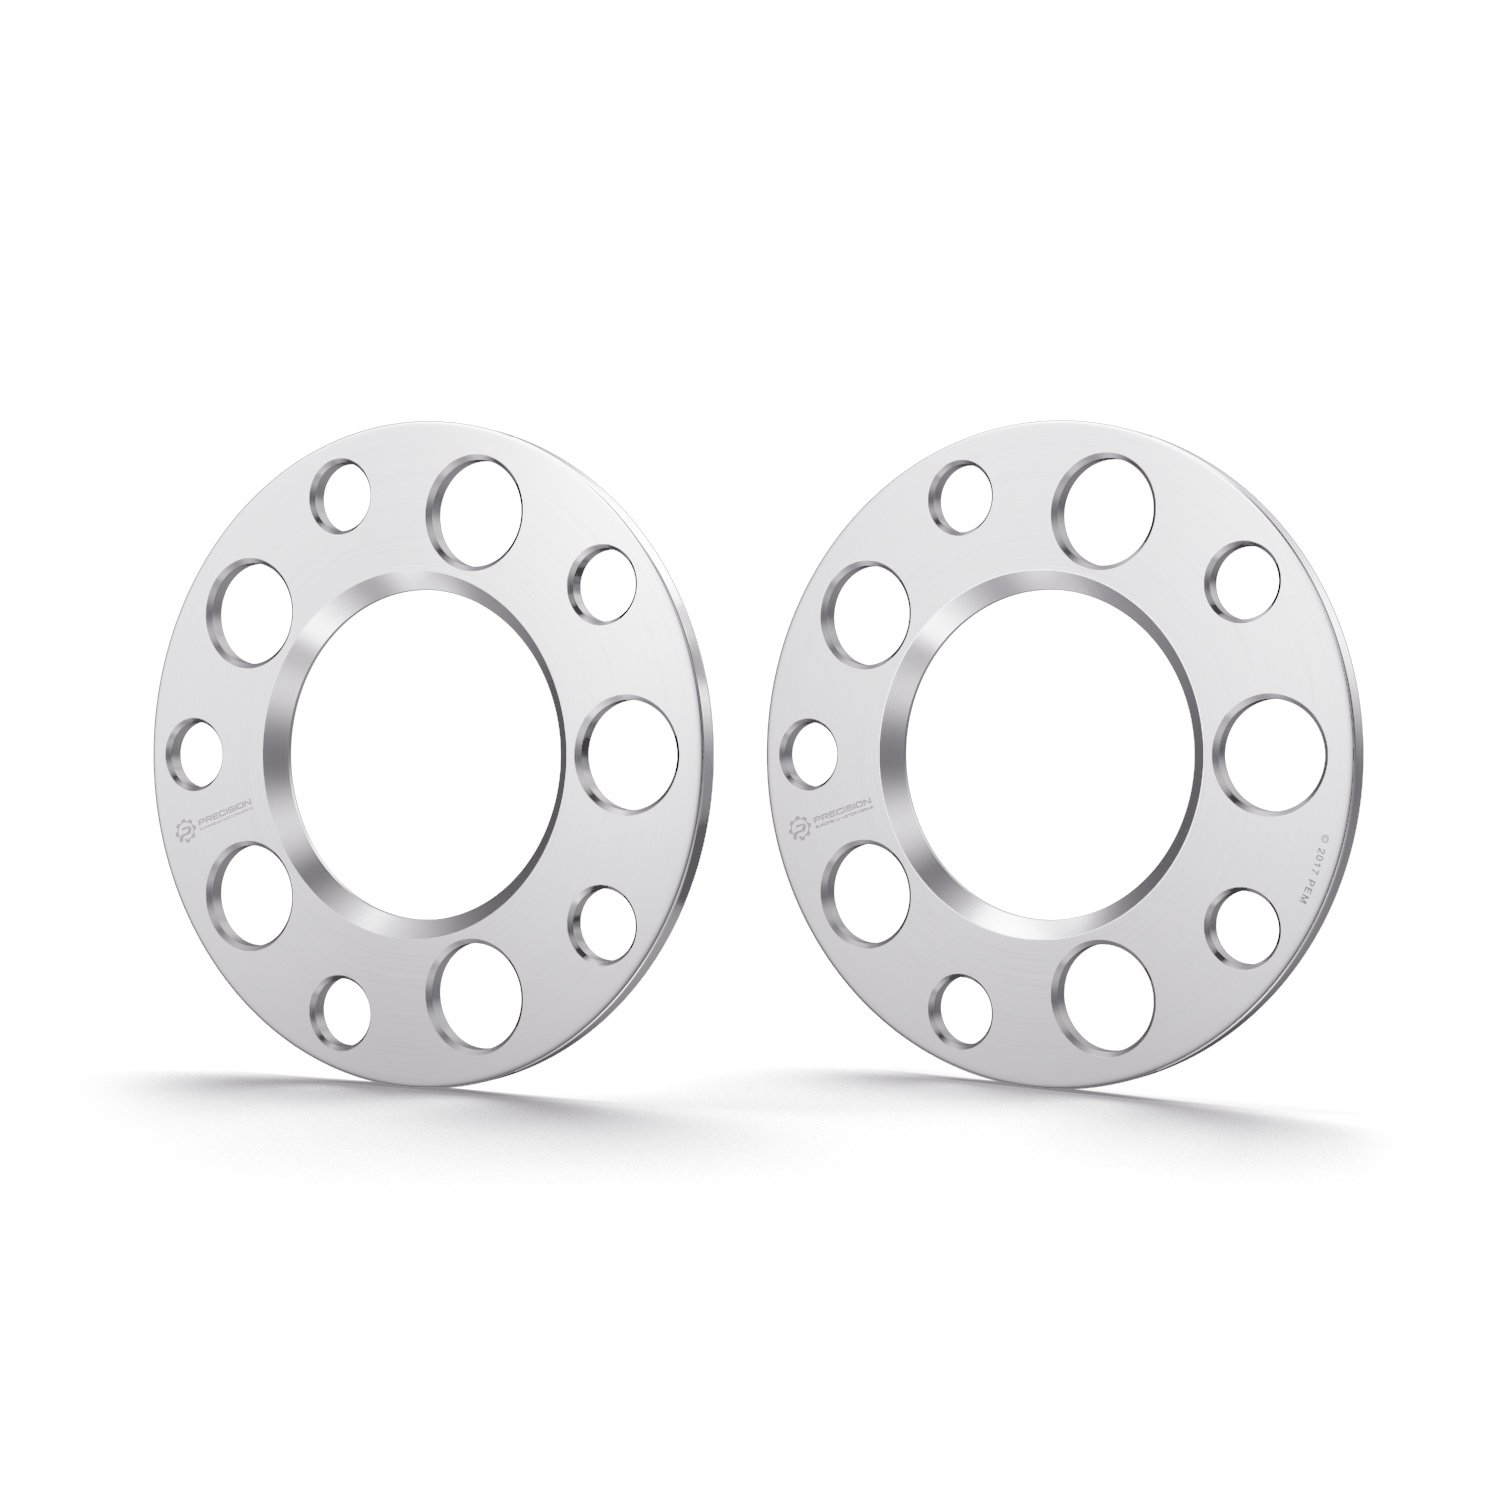 2 StanceMagic 1//2 Studs /& 70.5mm bore Precision European Motorwerks 5mm 5x114.3 // 5x4.5 Hubcentric Wheel Spacers for Ford Lincoln Mustang Edge Crown Victoria Bronco Ranger Explorer Town Car Mountaineer Aviator Edge Mark 7